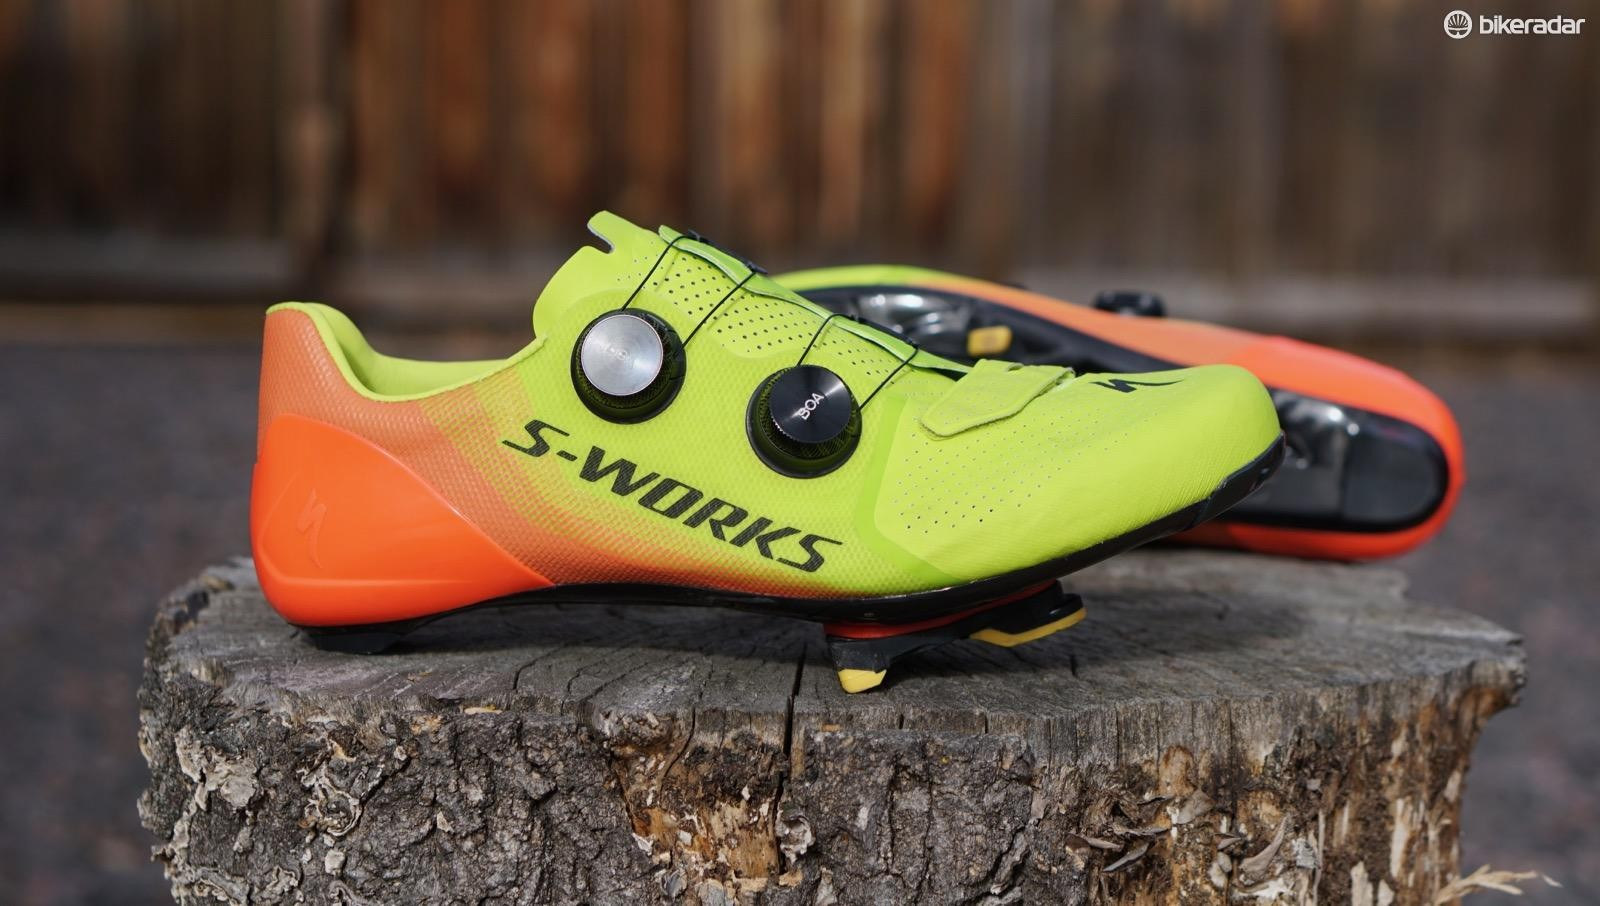 The Specialized S-Works 7 road shoe is an evolution of the brand's high-end footwear